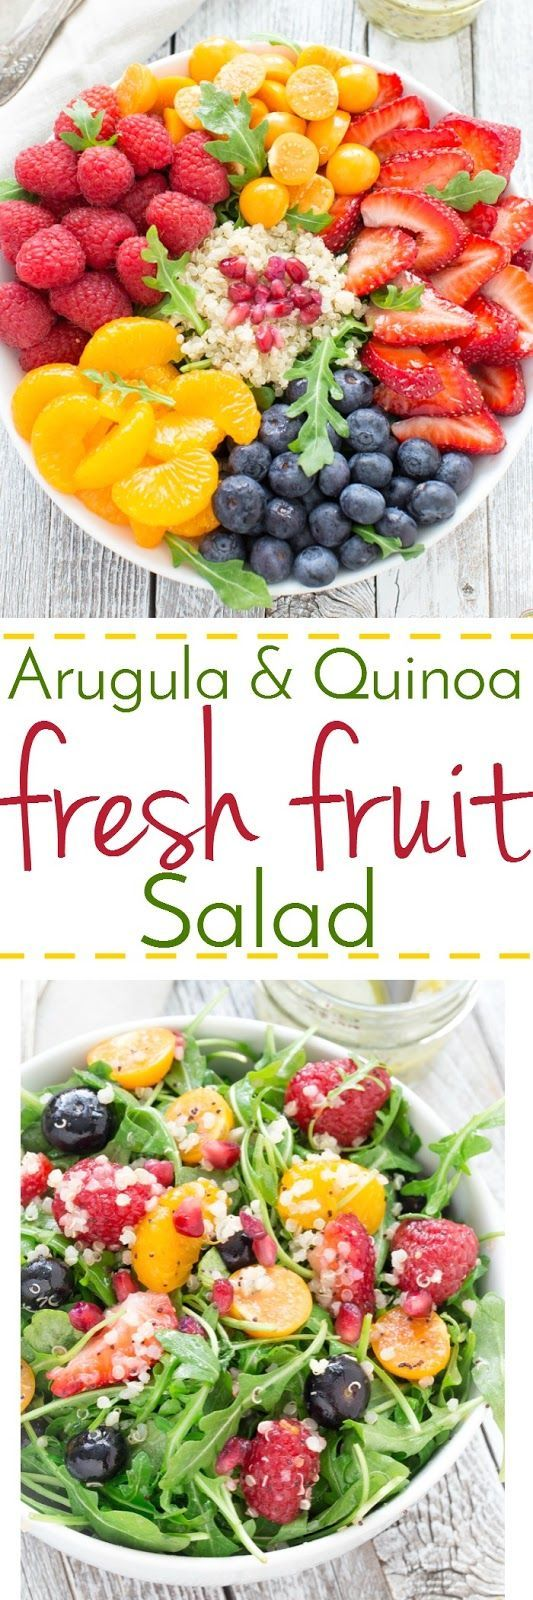 Fresh is the name of the game with this lighter, healthy and flavorful salad loaded with fresh berries, arugula, quinoa and drizzled with a orange poppy seed vinaigrette!